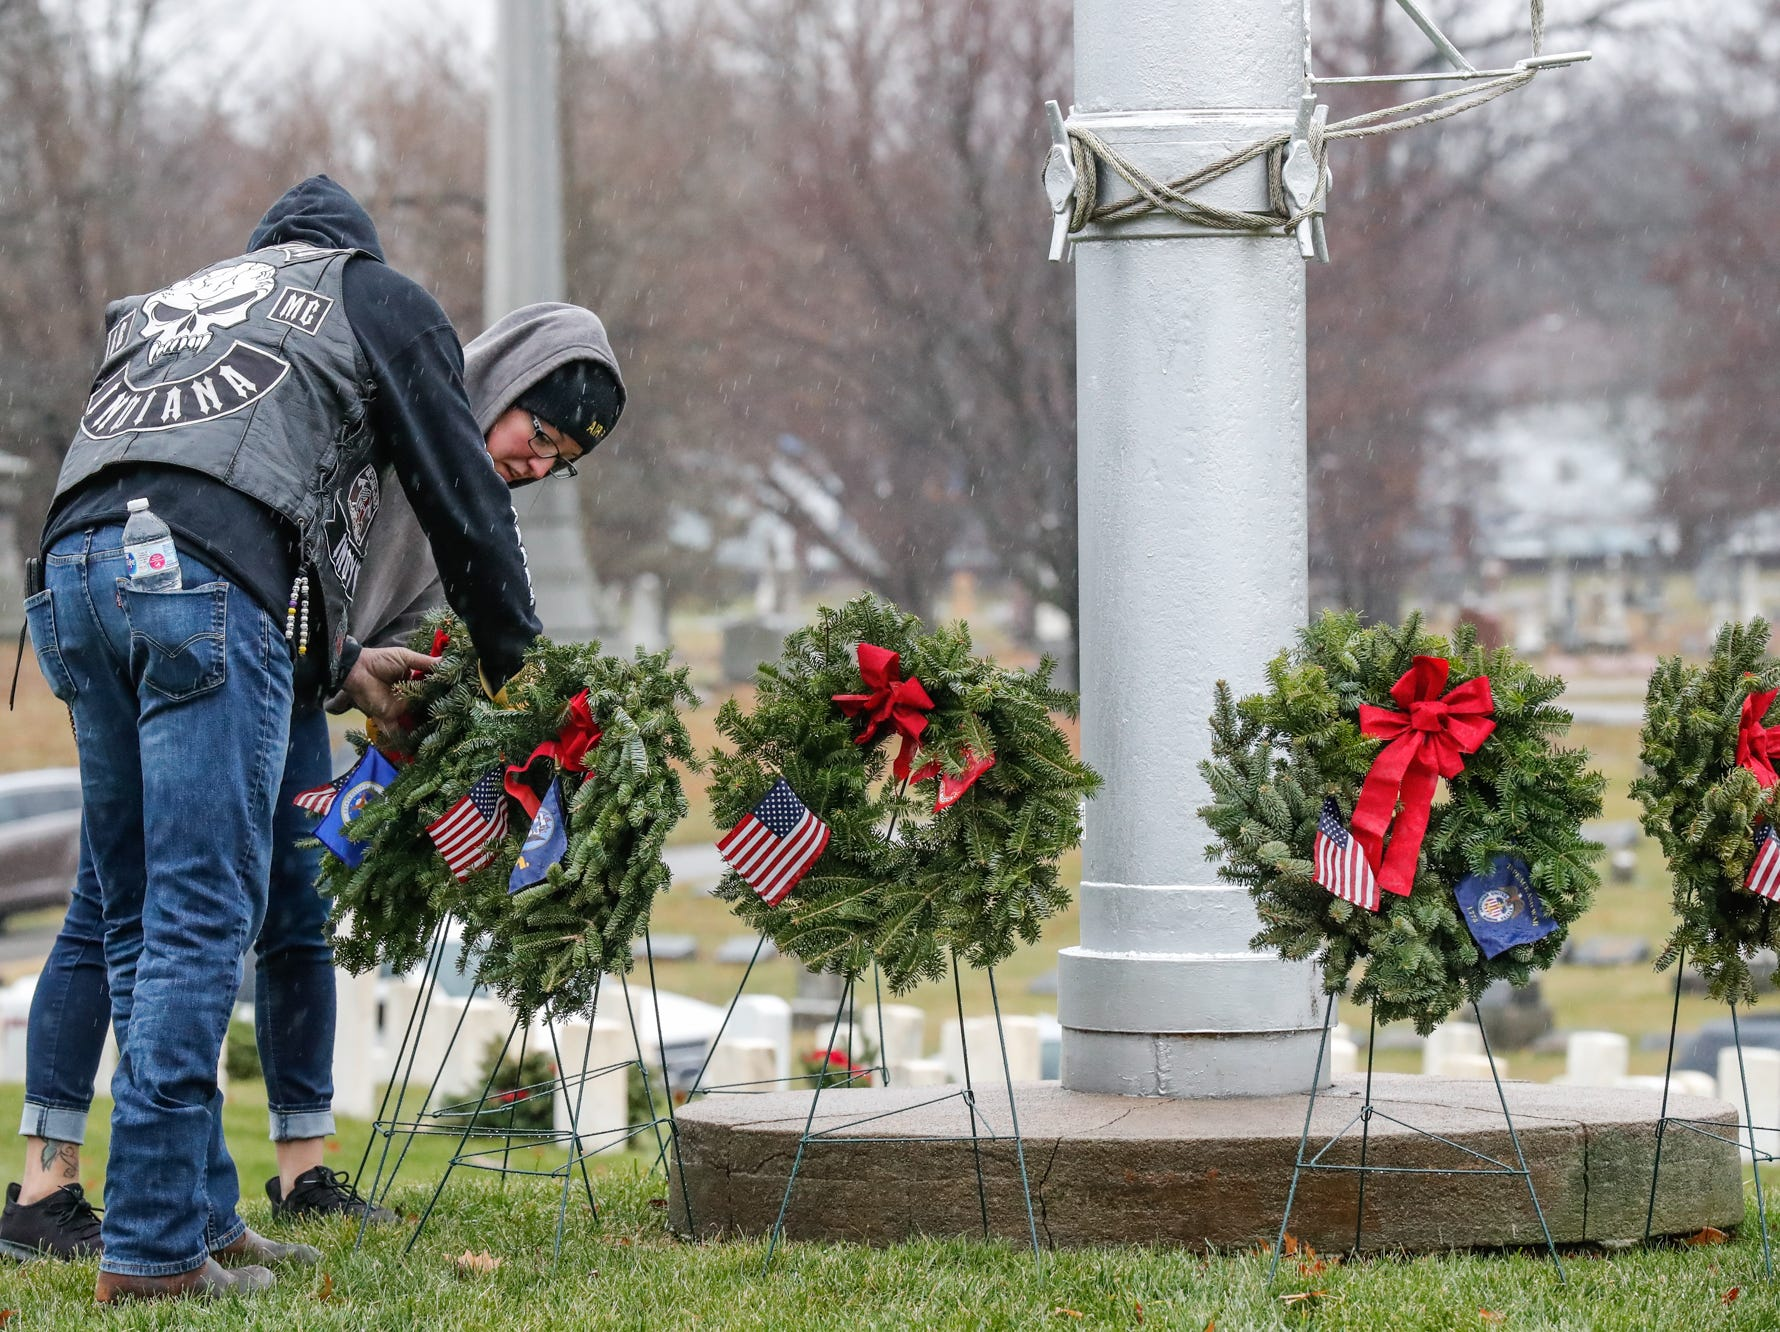 Active duty military members John and Amber Stark lay wreath during the Wreaths Across America wreath laying in remembrance of fallen military heroes at Crown Hill Cemetery on Saturday, Dec. 2018.